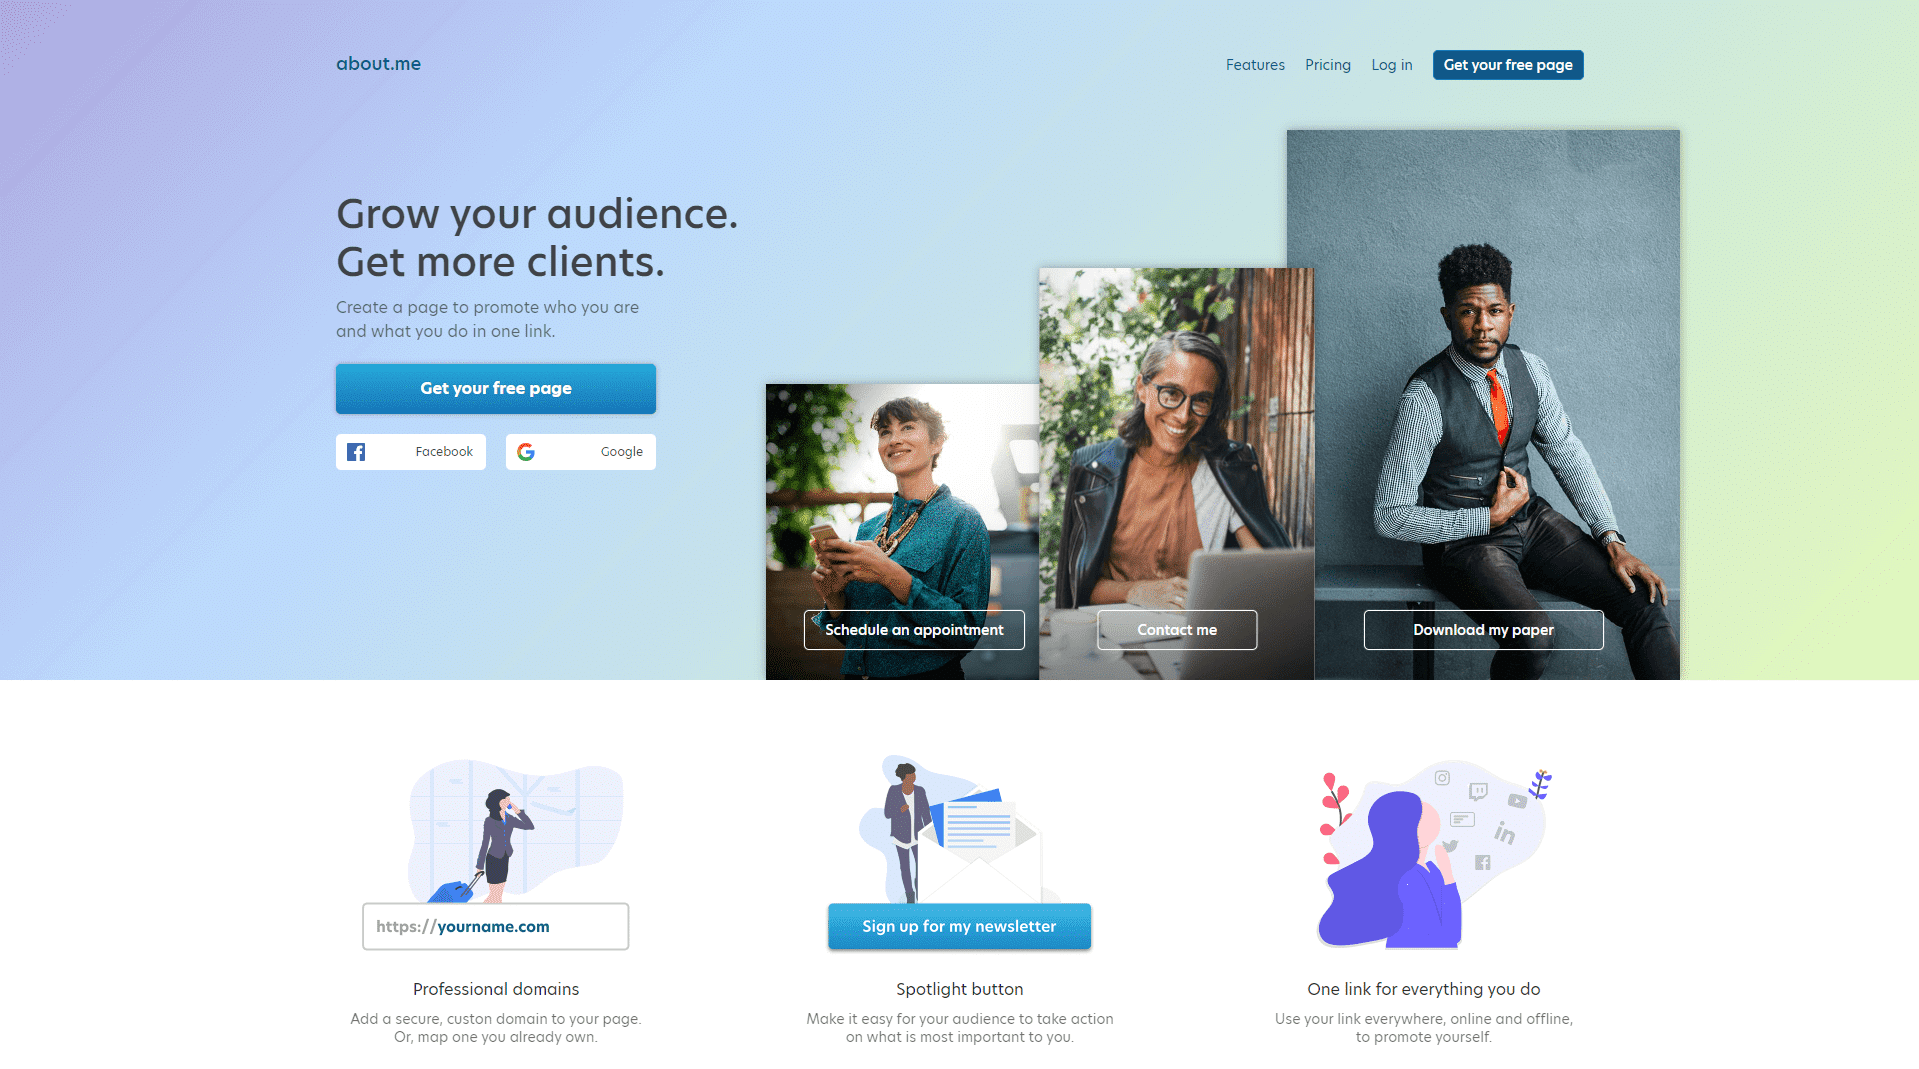 About Me homepage